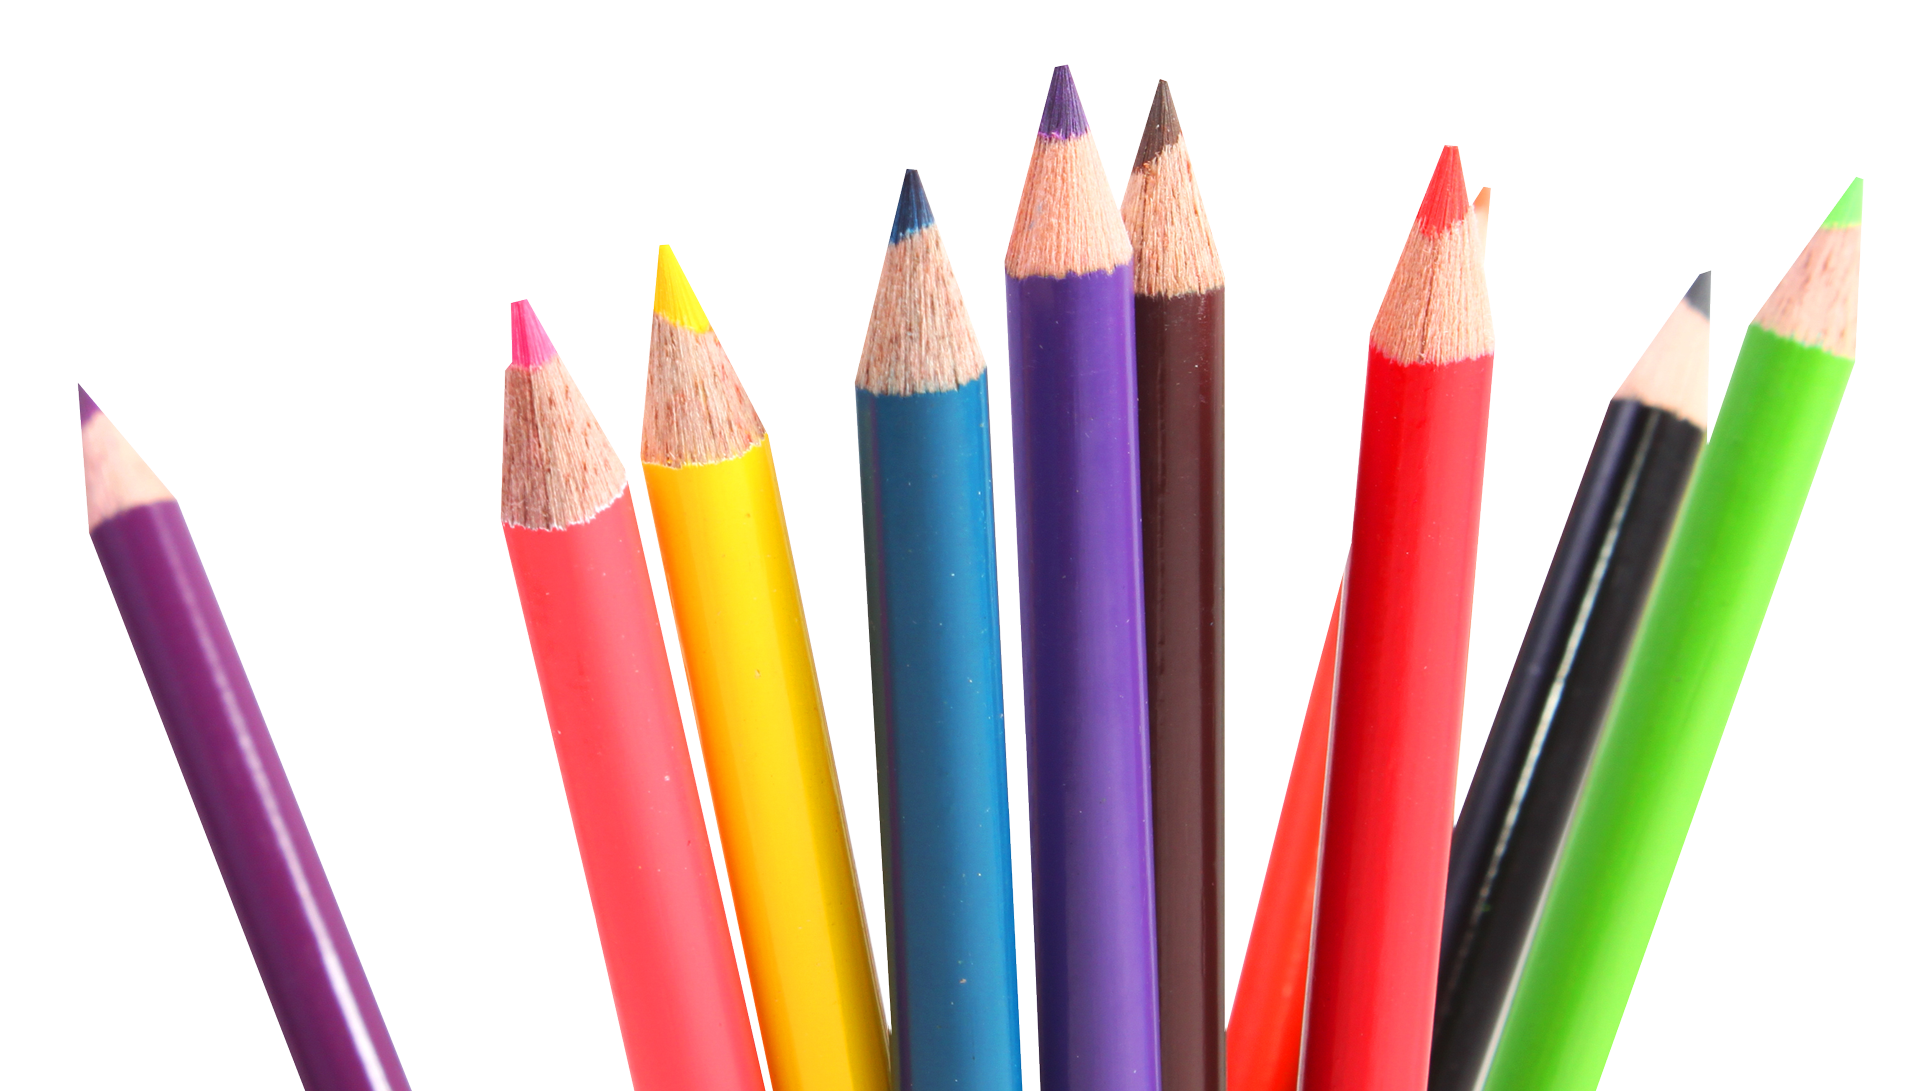 Crayons transparent many. Multicolor png image best